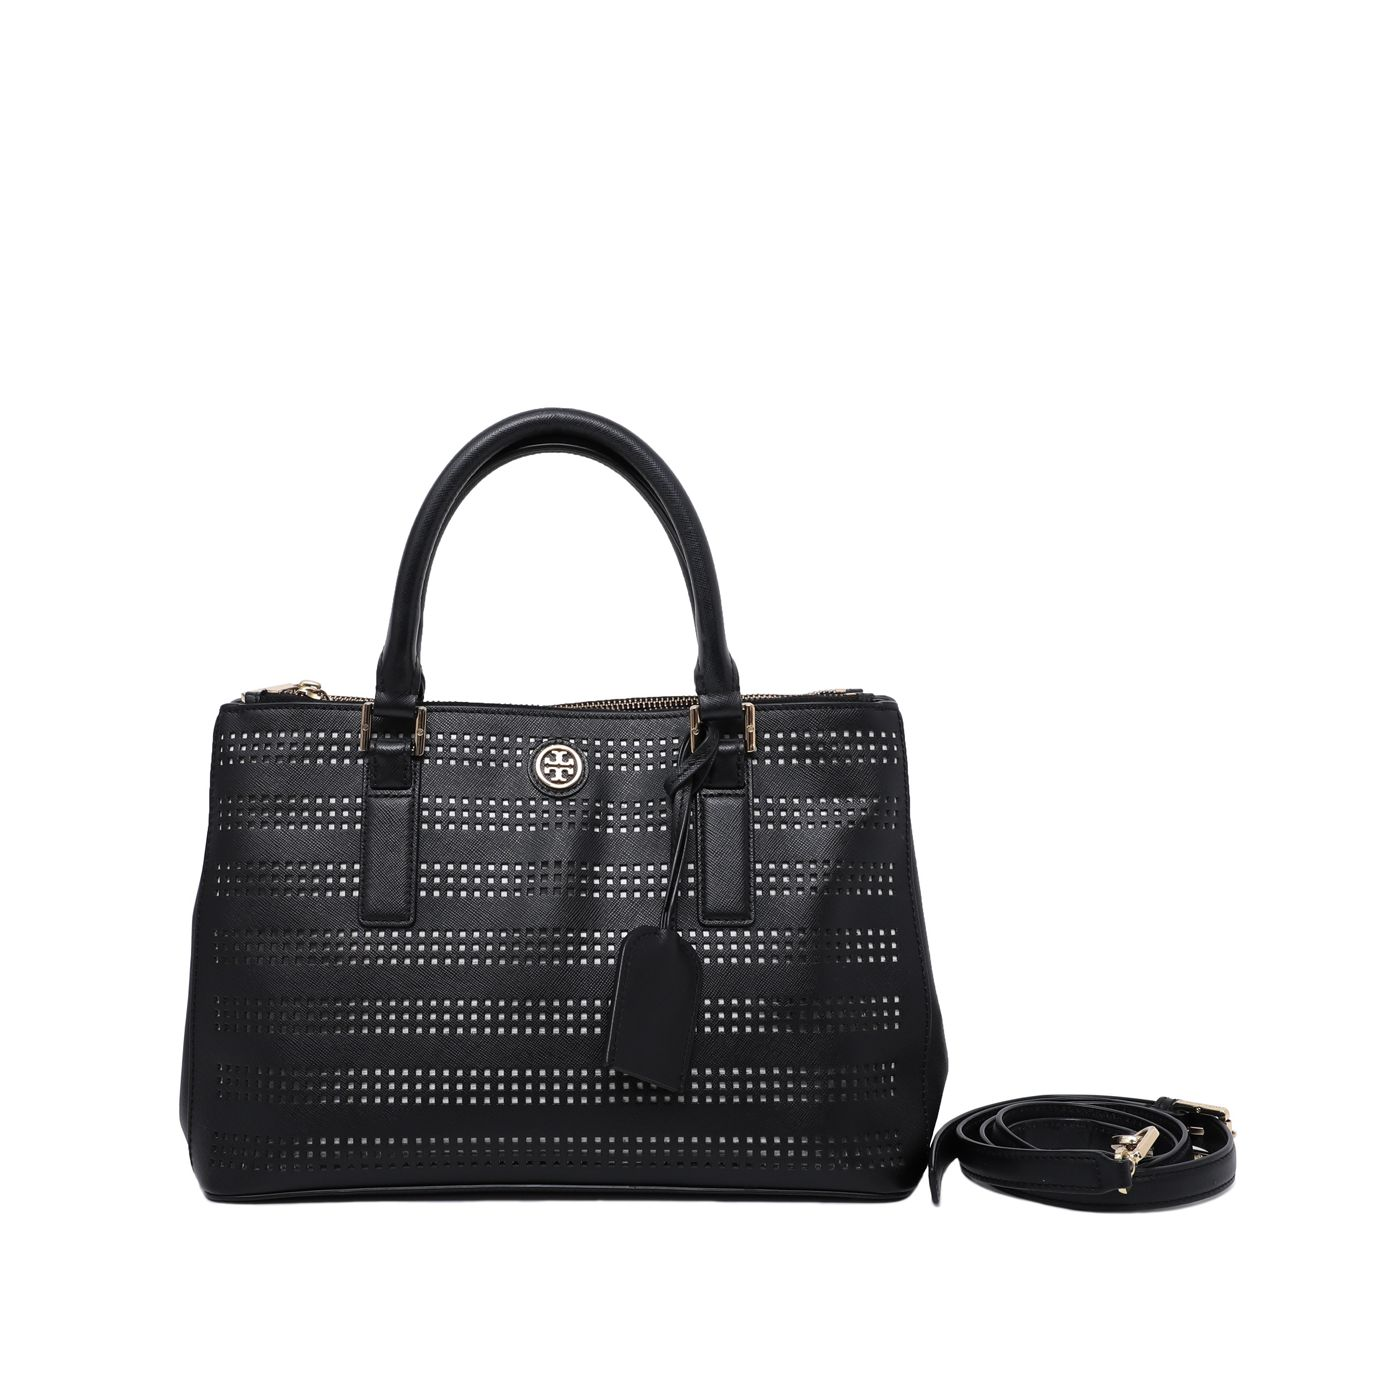 Tory burch robinson perforated double zip black